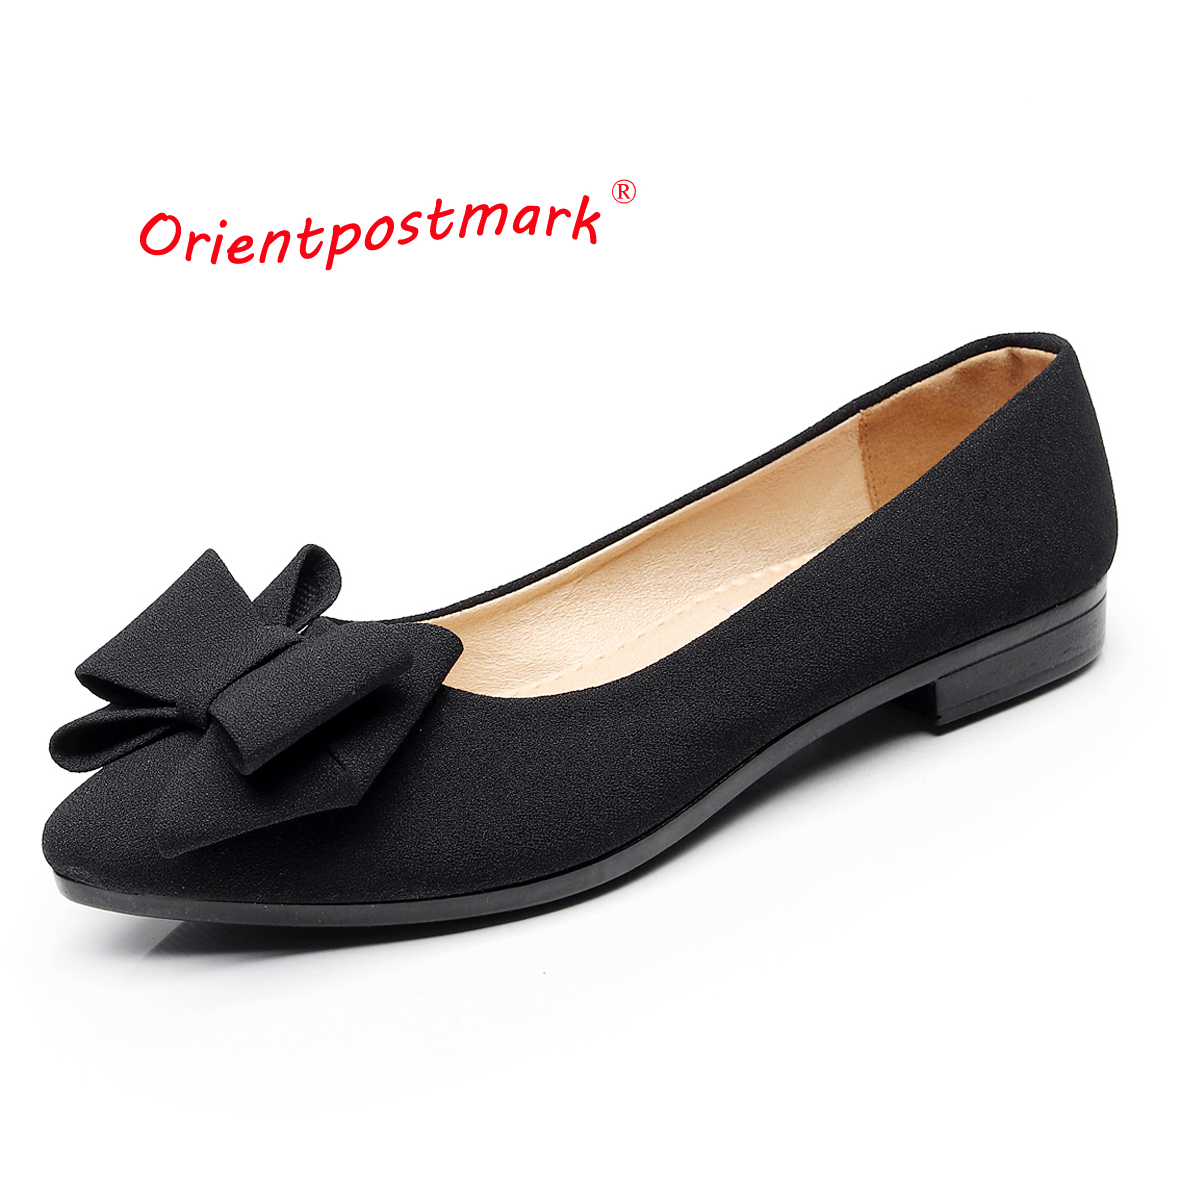 Orientpostmark Womens Boat Shoes Pregnant Flats Women Flats Shoes for Work Cloth Sweet Loafers Slip On Women Ballet Flats ShoesOrientpostmark Womens Boat Shoes Pregnant Flats Women Flats Shoes for Work Cloth Sweet Loafers Slip On Women Ballet Flats Shoes